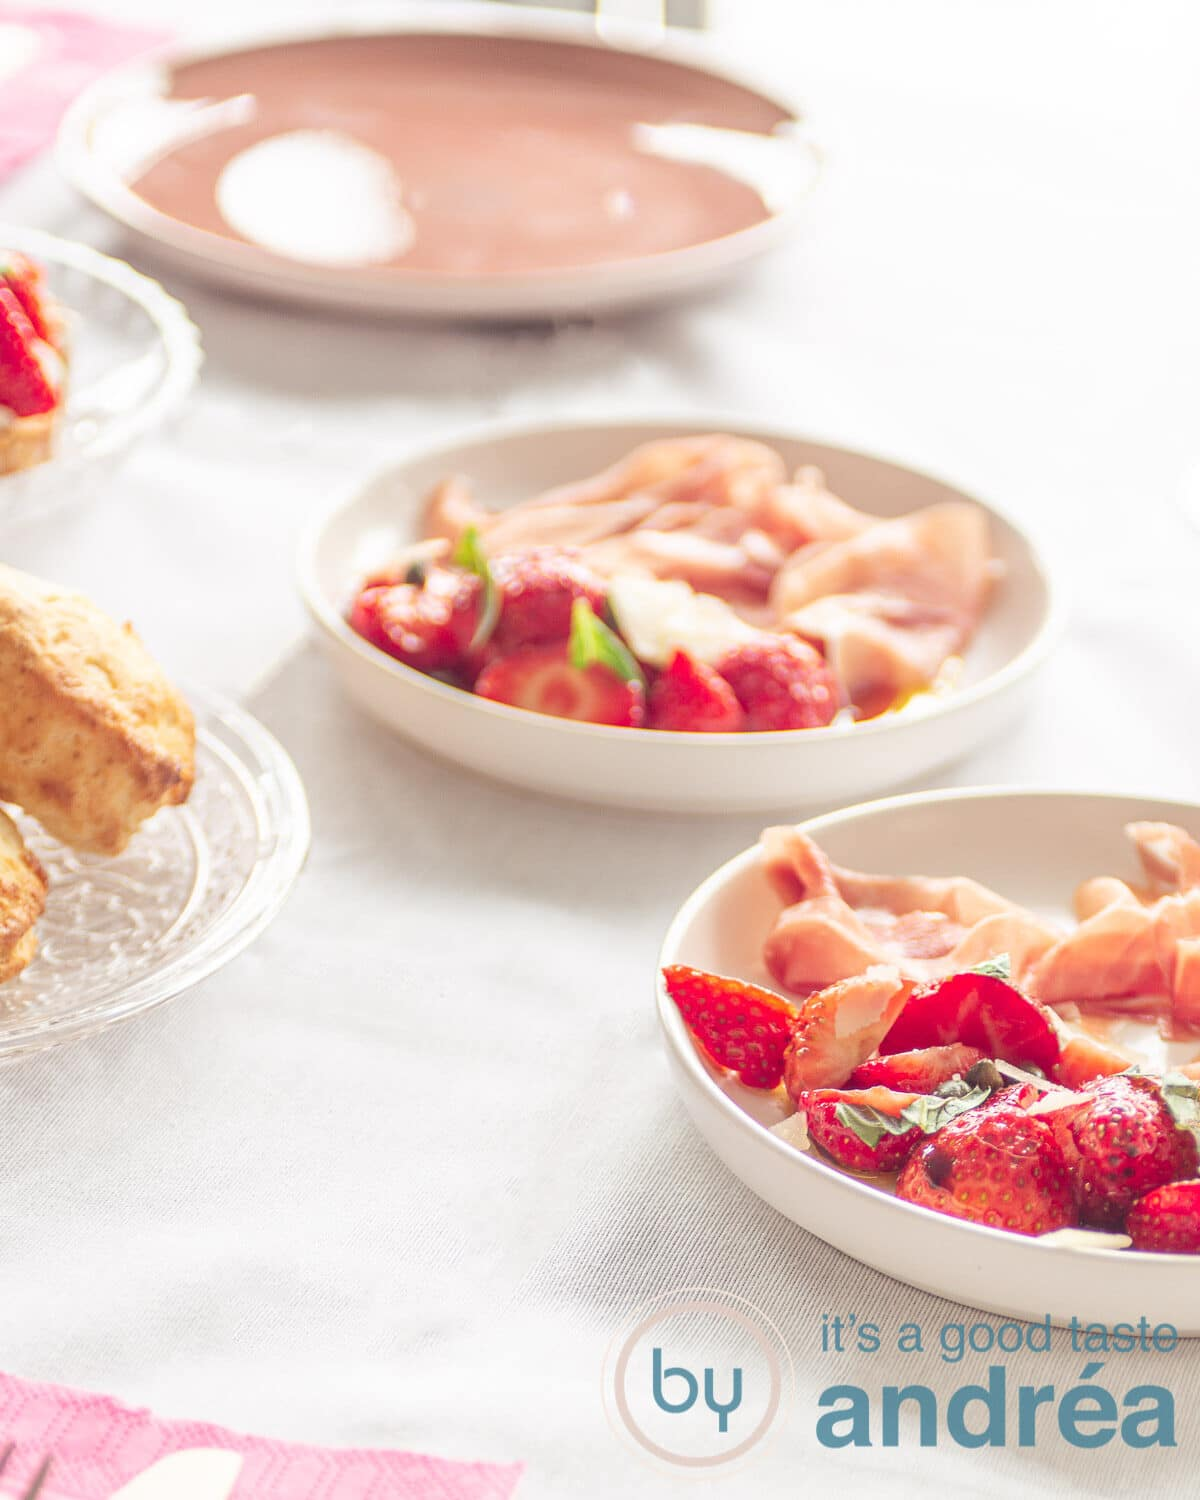 strawberries marinated in balsamic vinegar on a plate and some scones